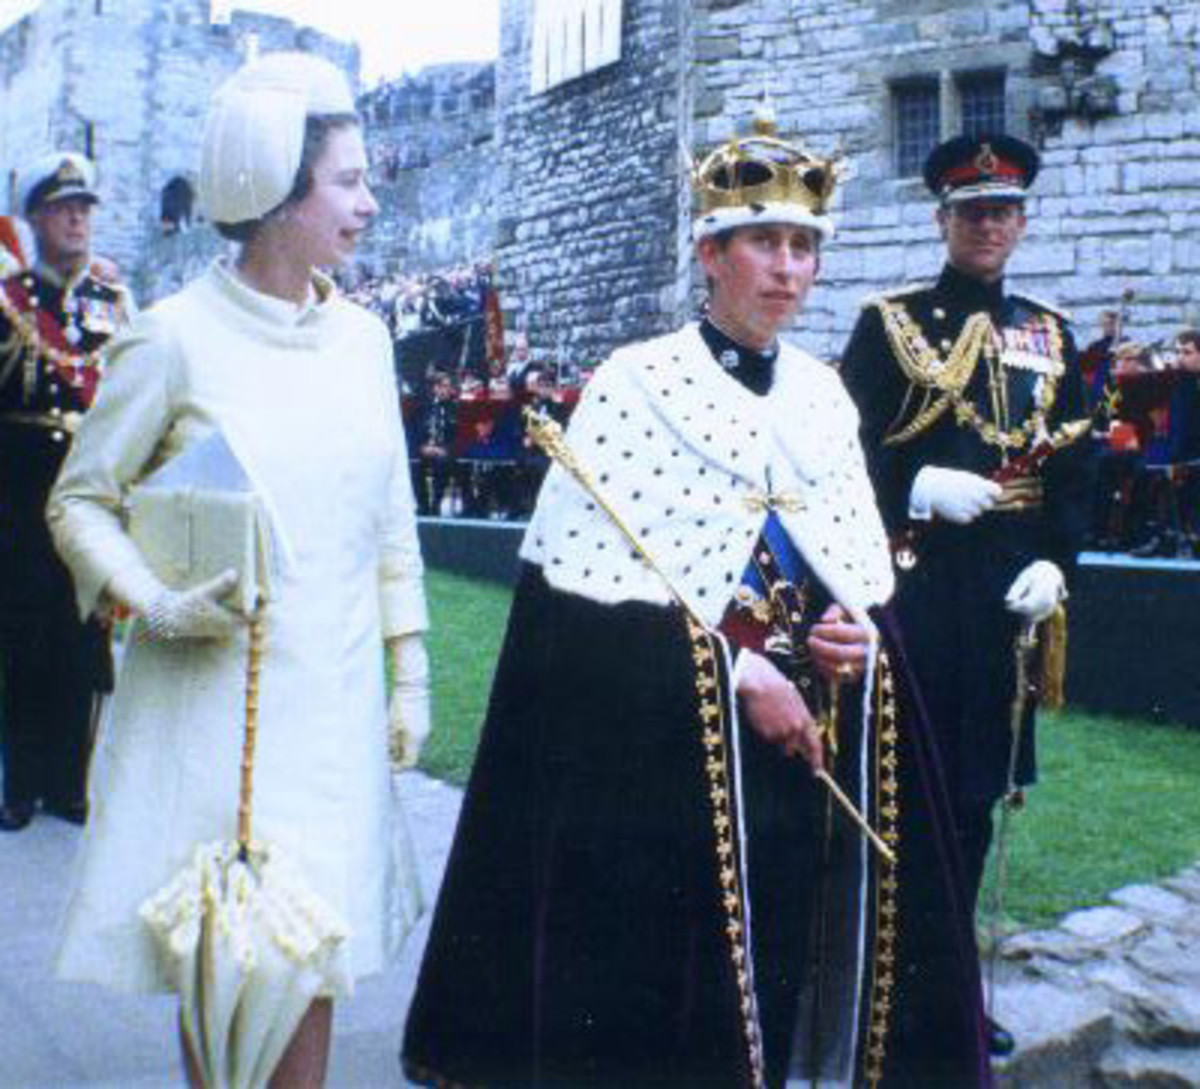 the-investiture-of-prince-charles-the-current-prince-of-wales